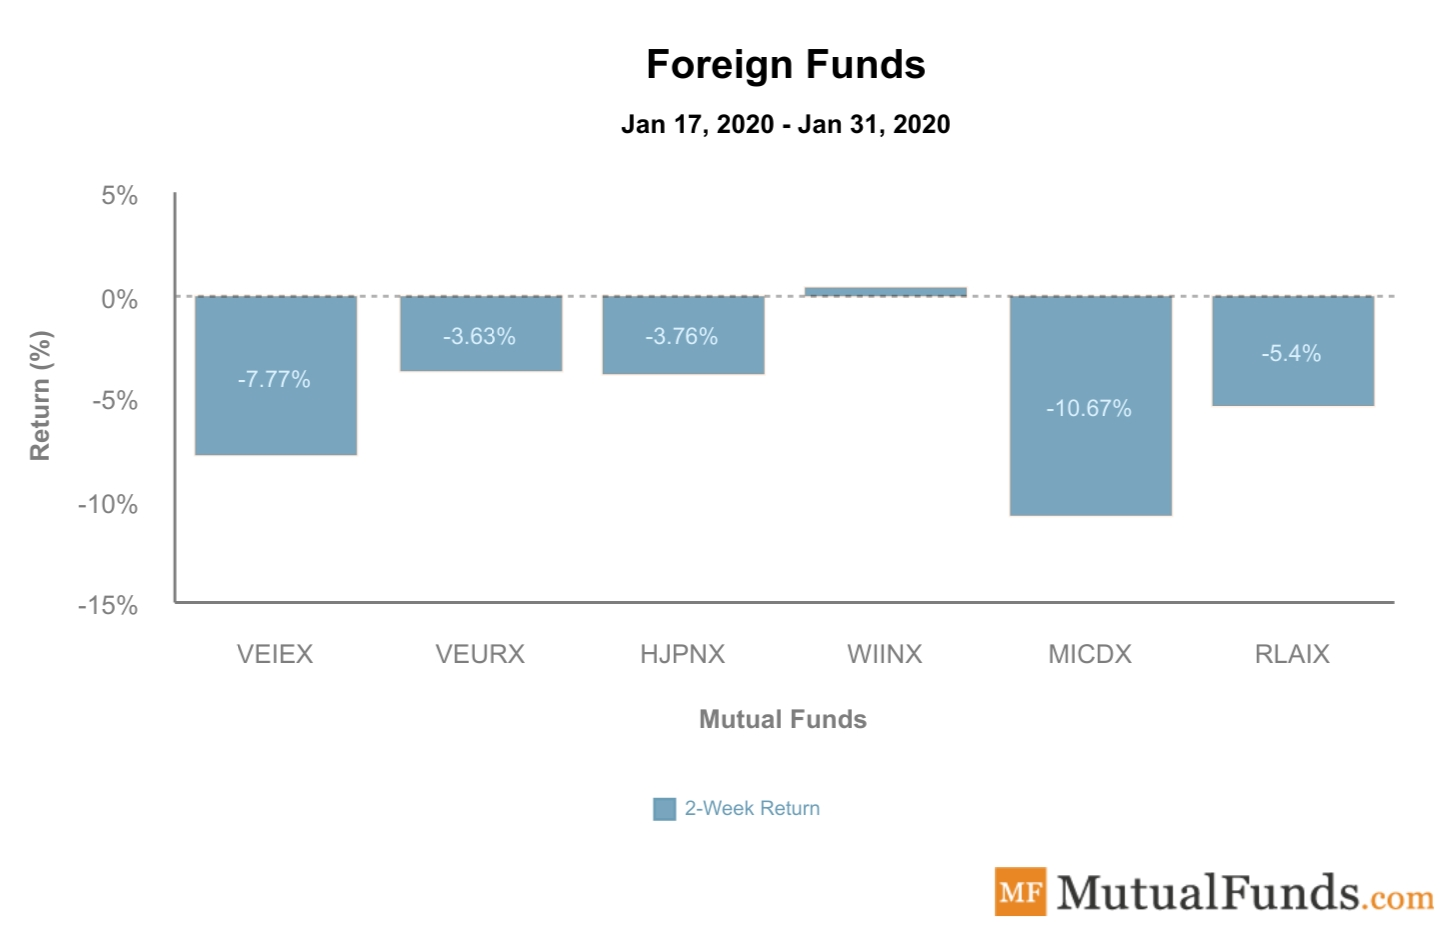 Foreign Funds Performance February 4, 2020